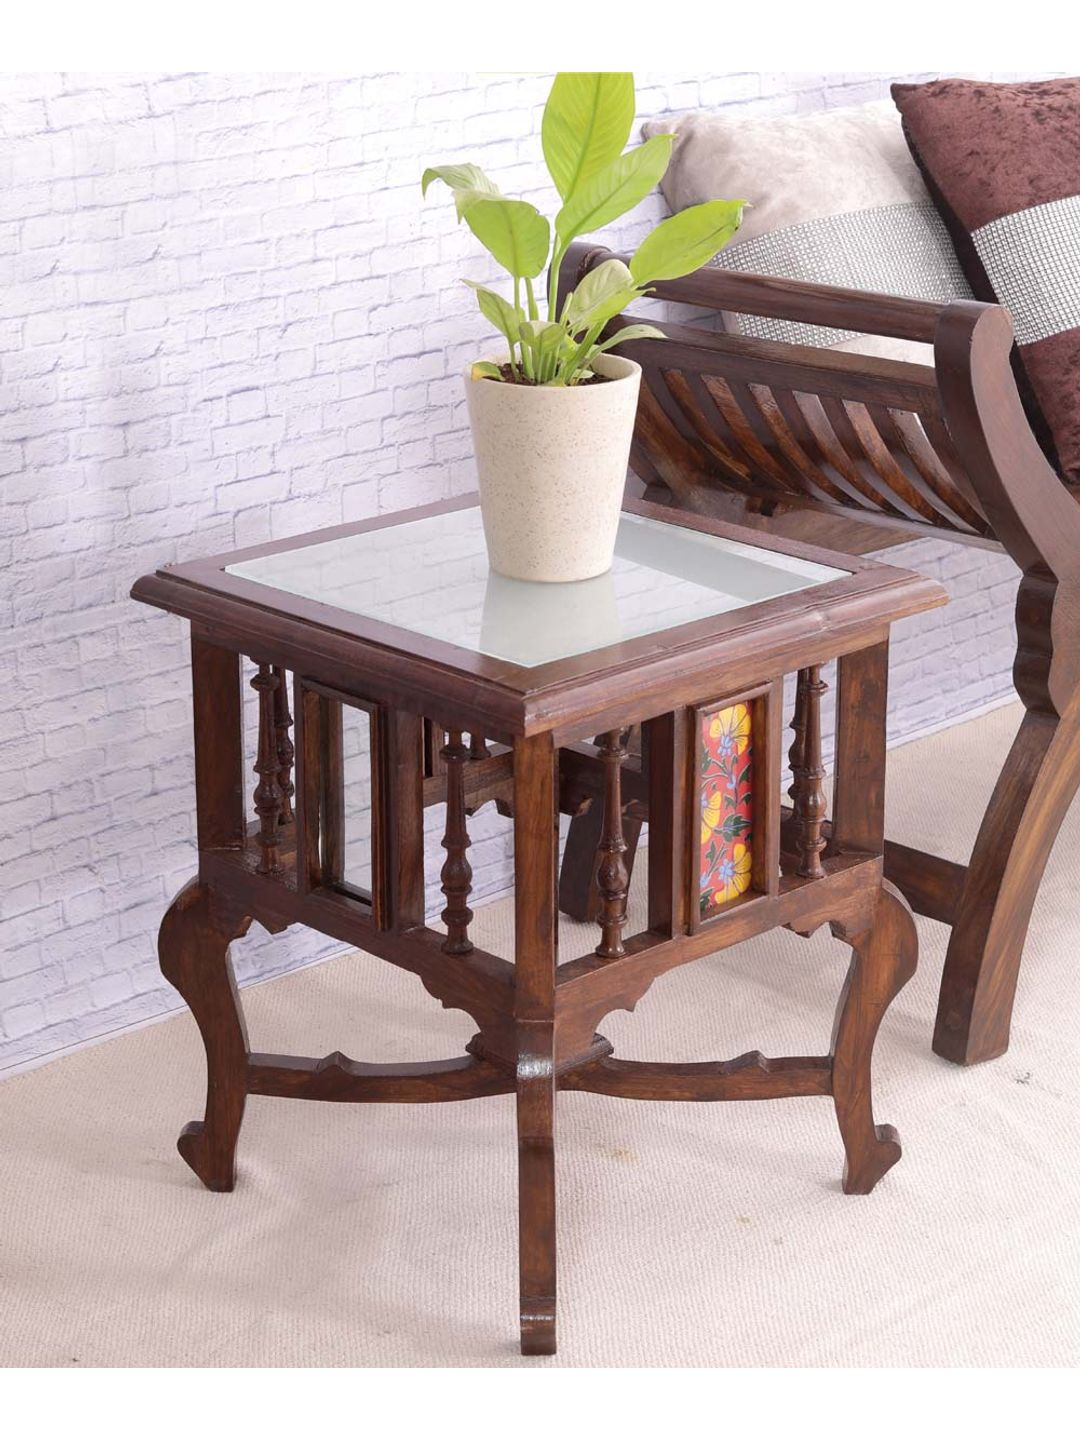 Hand Crafted Teak Wood 18 inch Tile Table